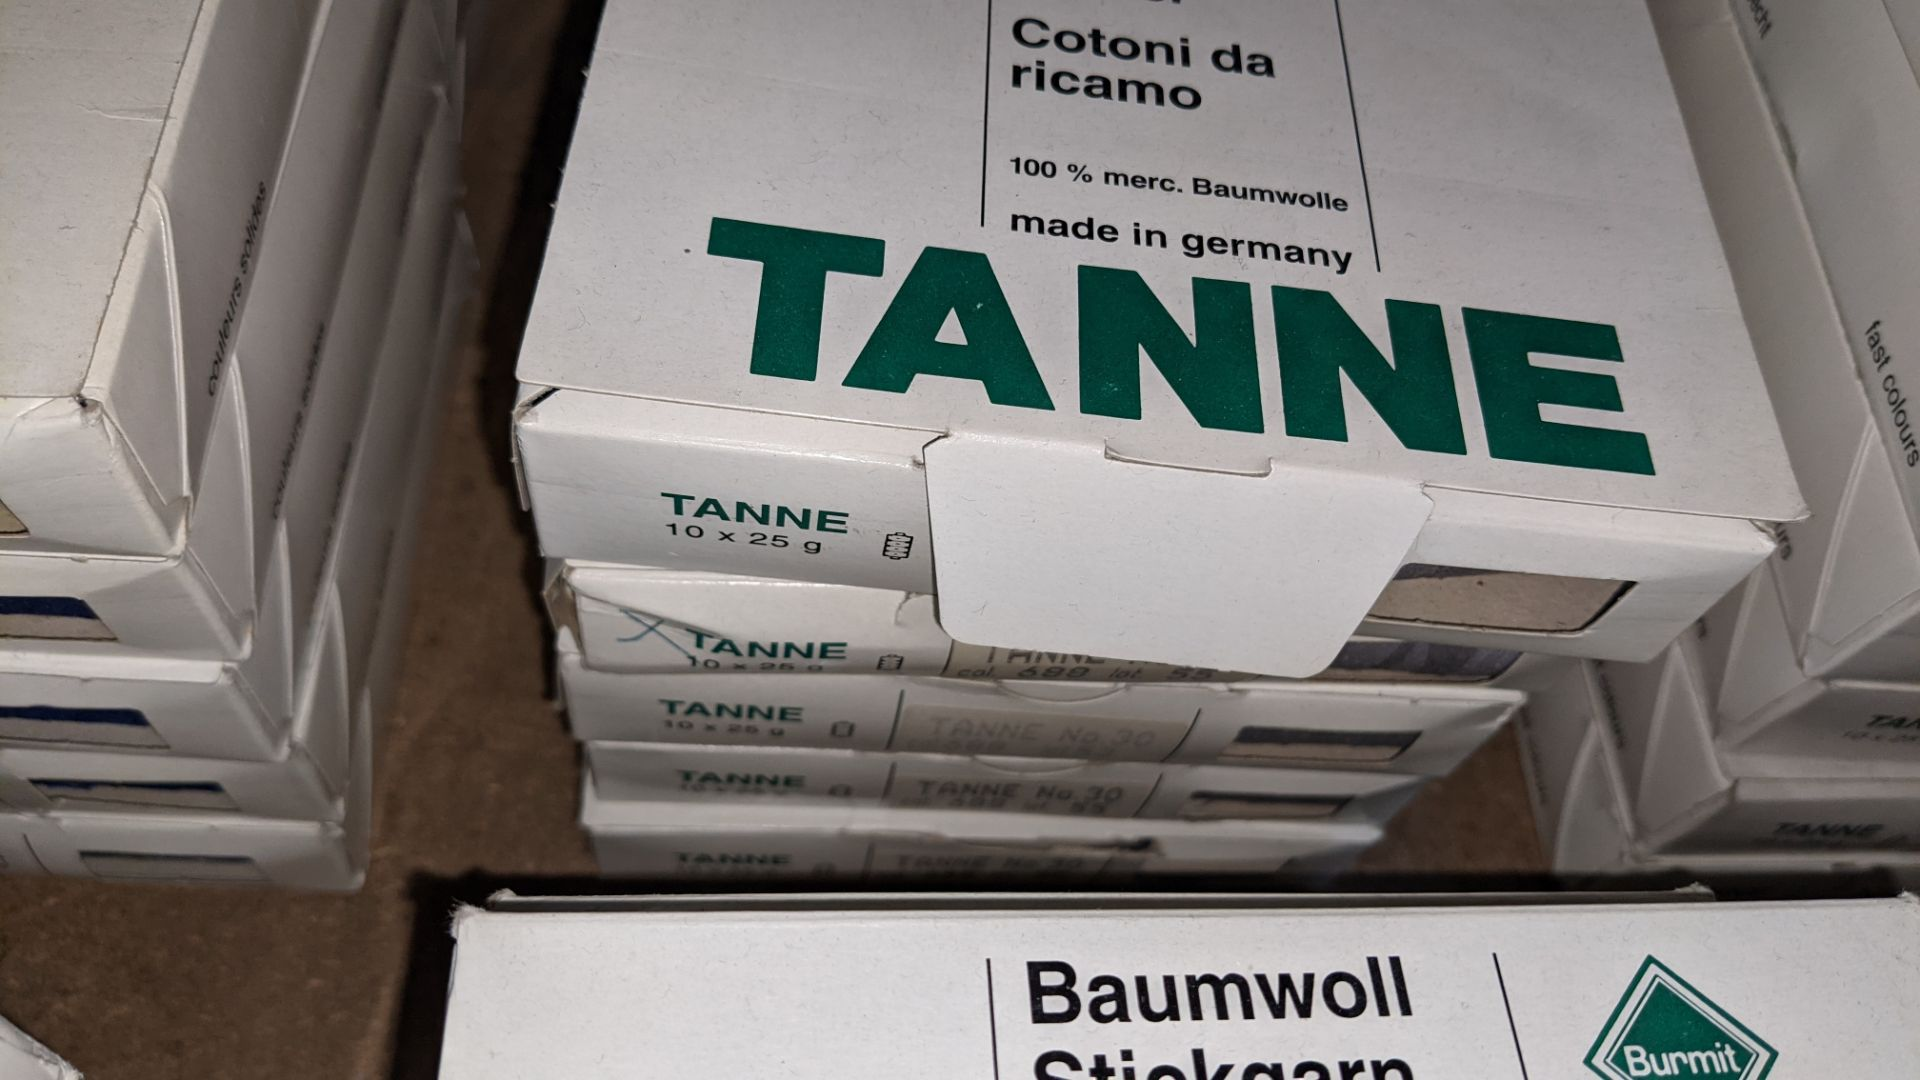 16 boxes of Madeira Tanne (Burmit) cotton embroidery thread - Image 4 of 8